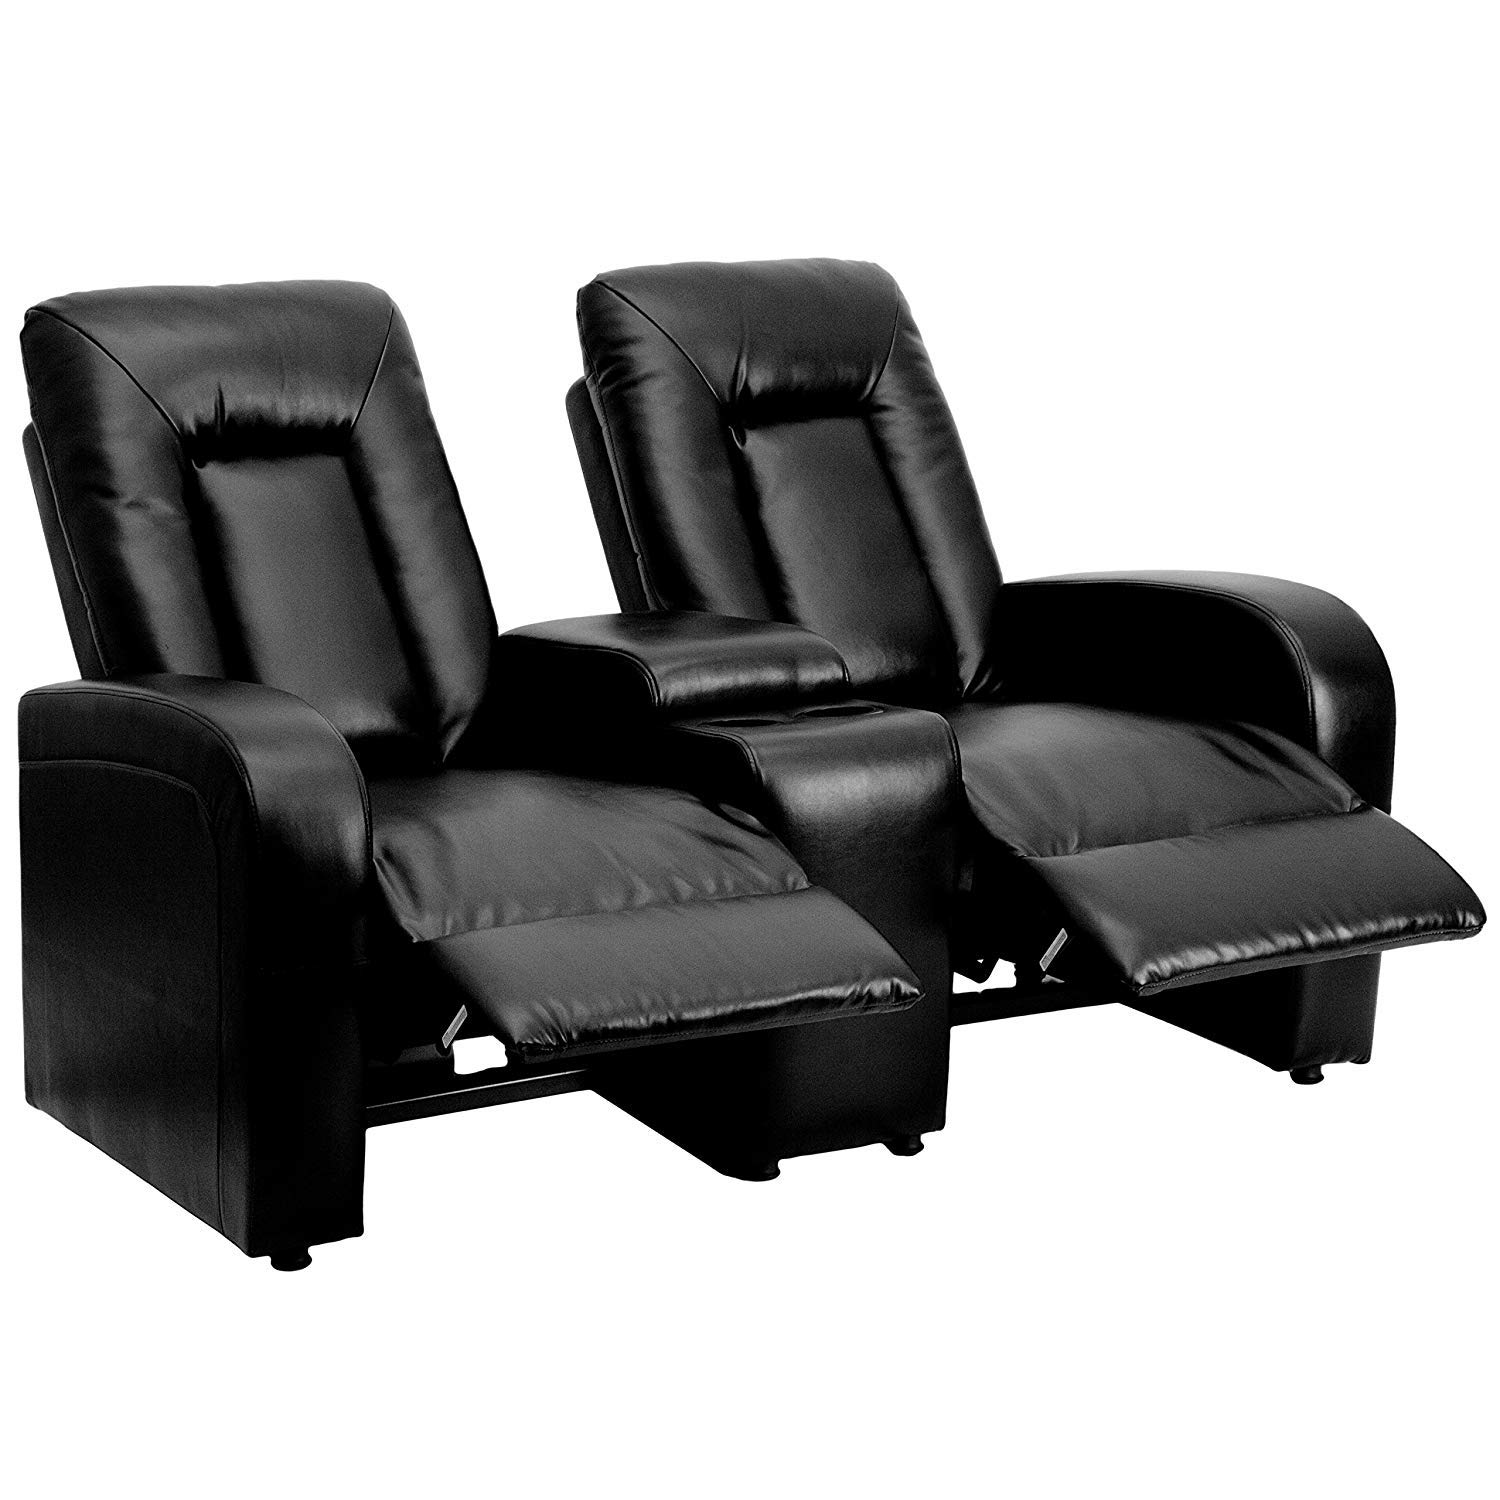 Black Leather 2-Seat Push Back Home Theater Seating Unit, Leather Recliner Sofa with Cup Holders, Sorage Console, Headrest by Dwellfor